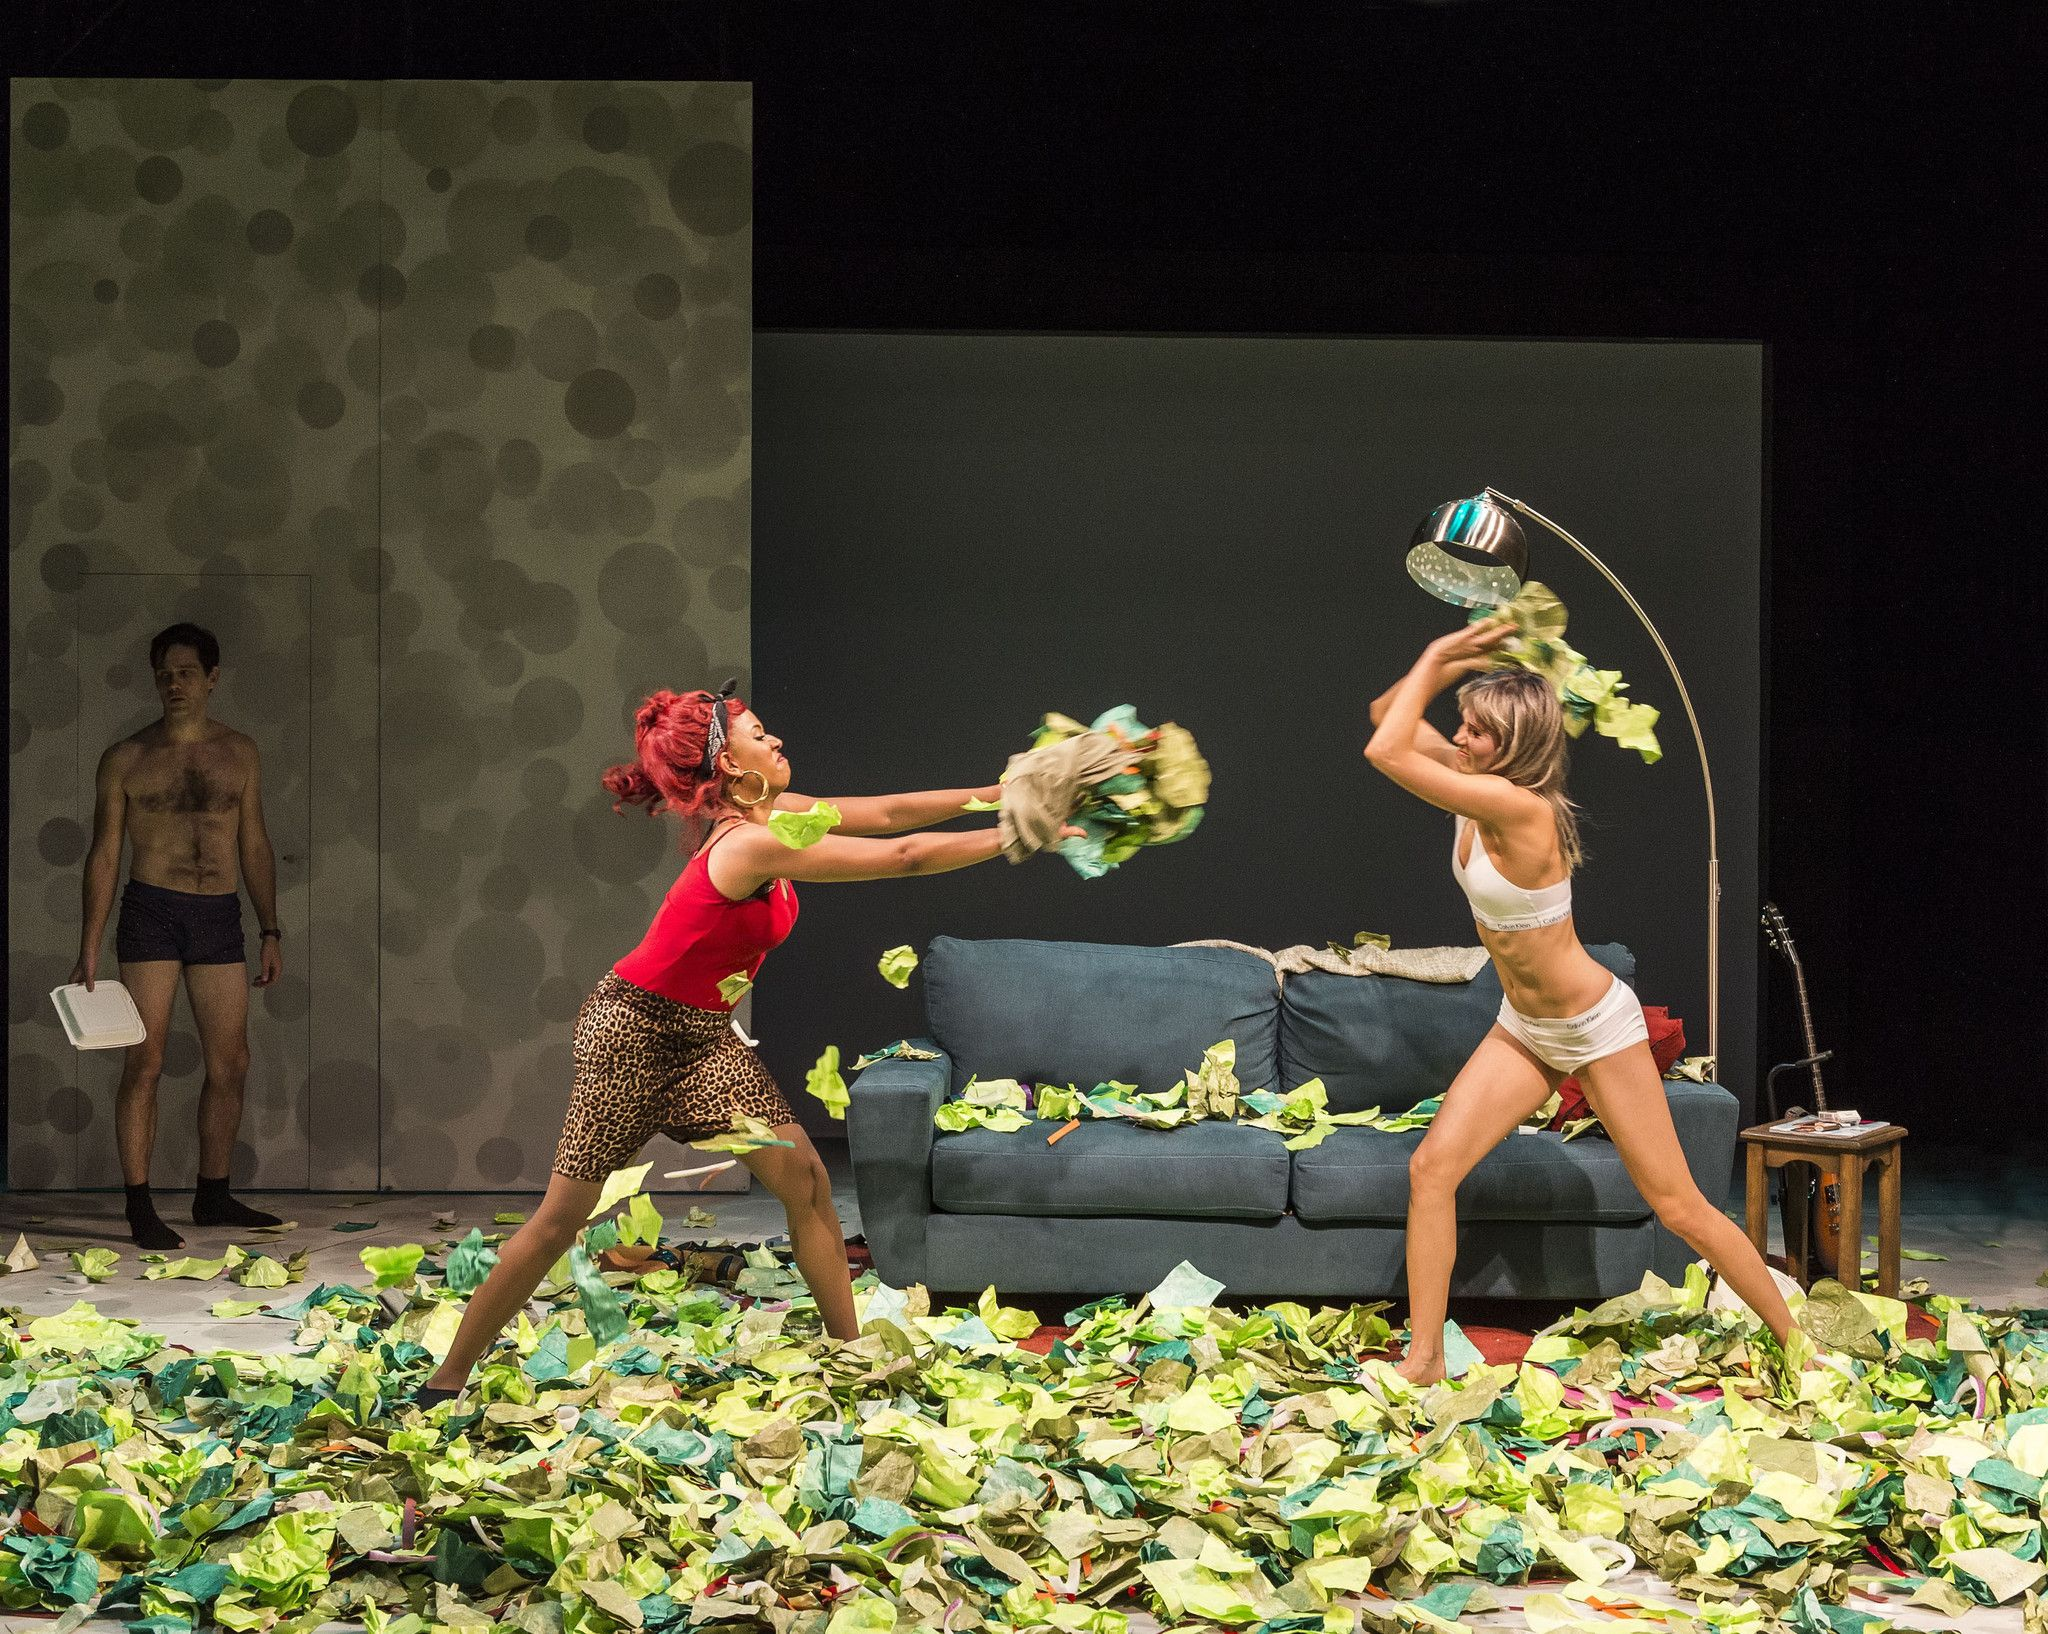 Production photo from the 2015 Center Theatre Group production of Women Laughing Alone With Salad by Sheila Callaghan.